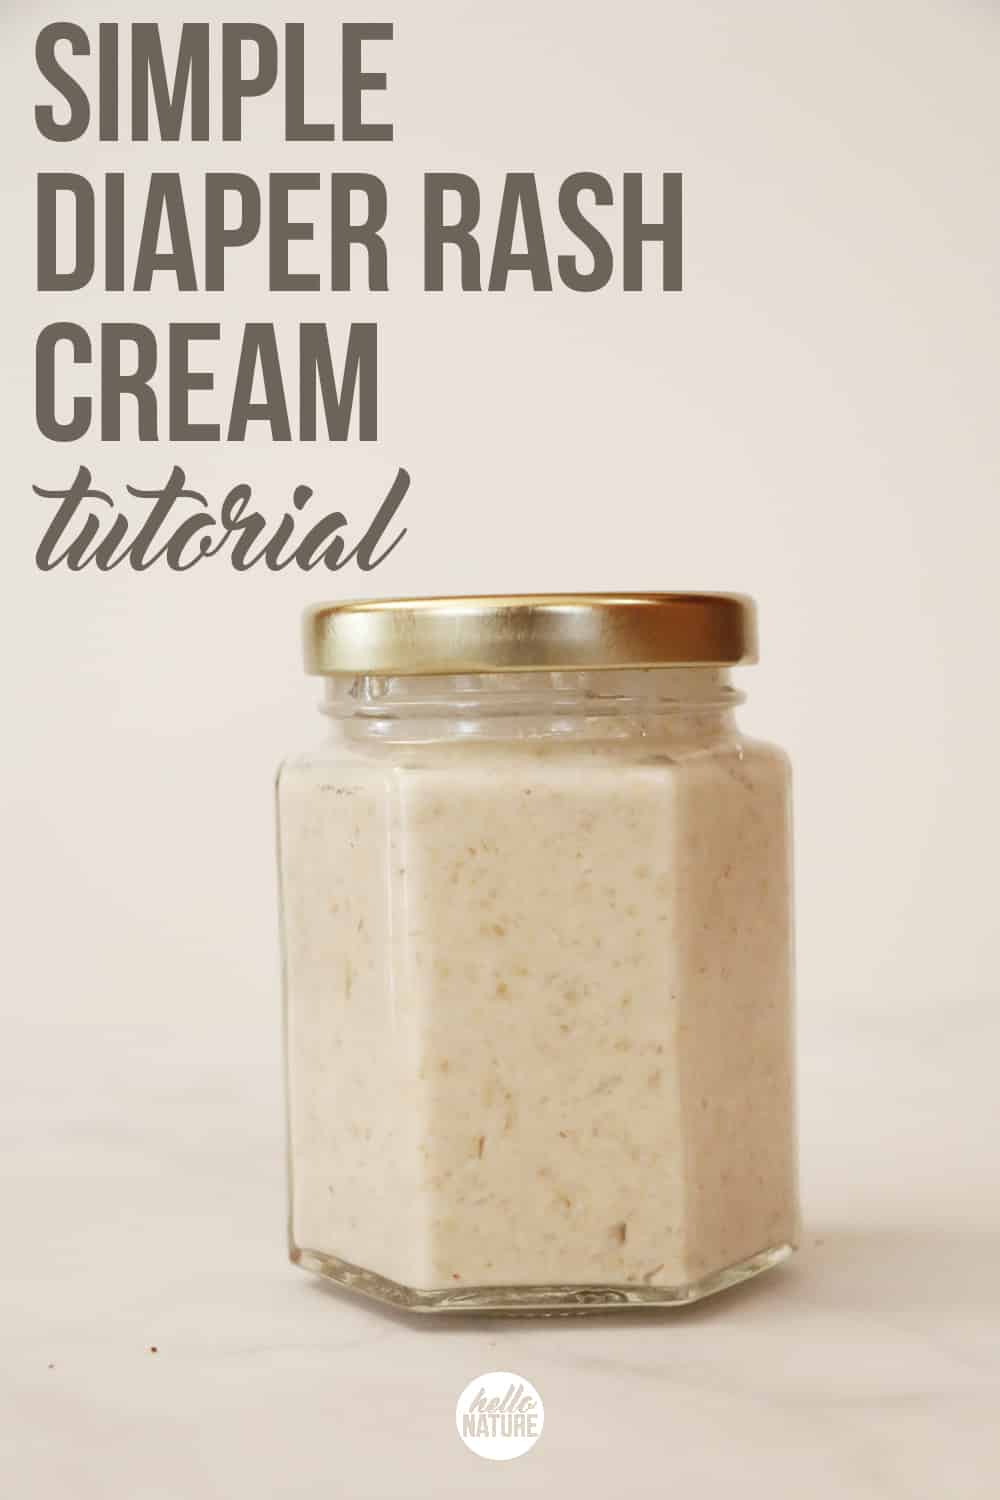 Looking for an alternative to store bought cream? This simple DIY diaper rash cream will provide relief with just a few pantry ingredients!